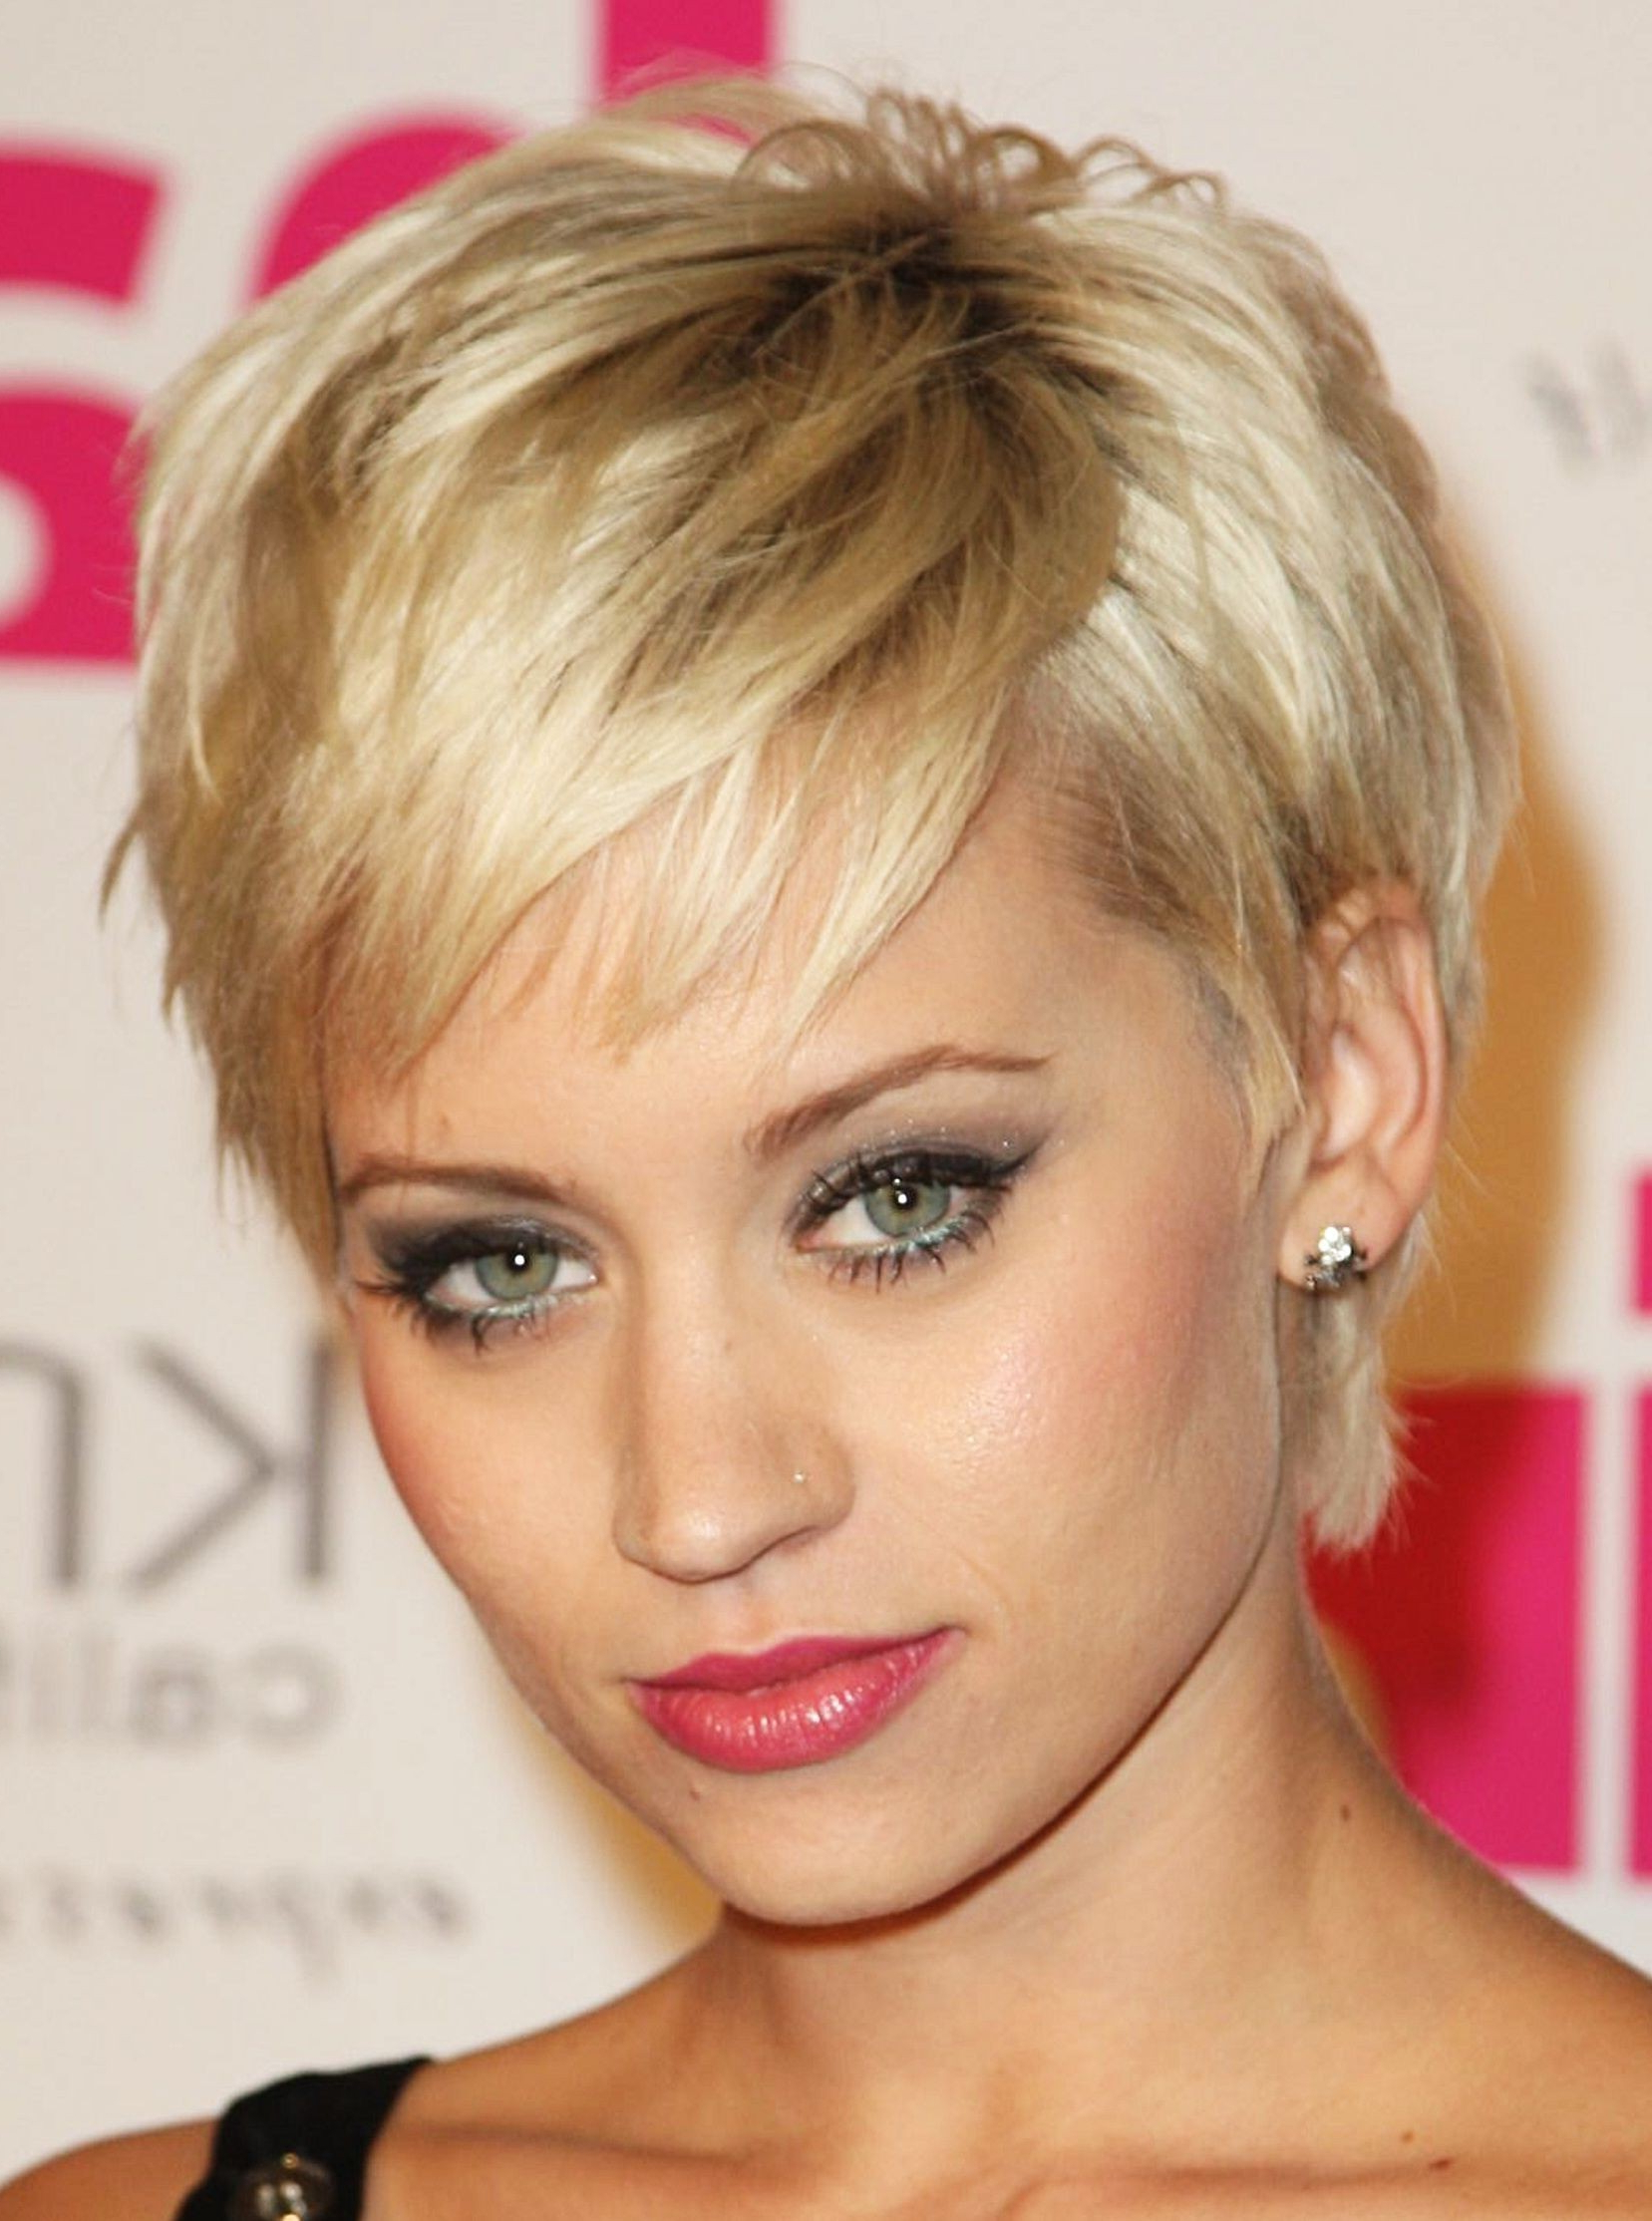 Innovative 2016 Short Hairstyles For Women In Their 40S – Fresh Hair Cut Regarding Short Haircuts For Women In Their 40S (View 15 of 25)